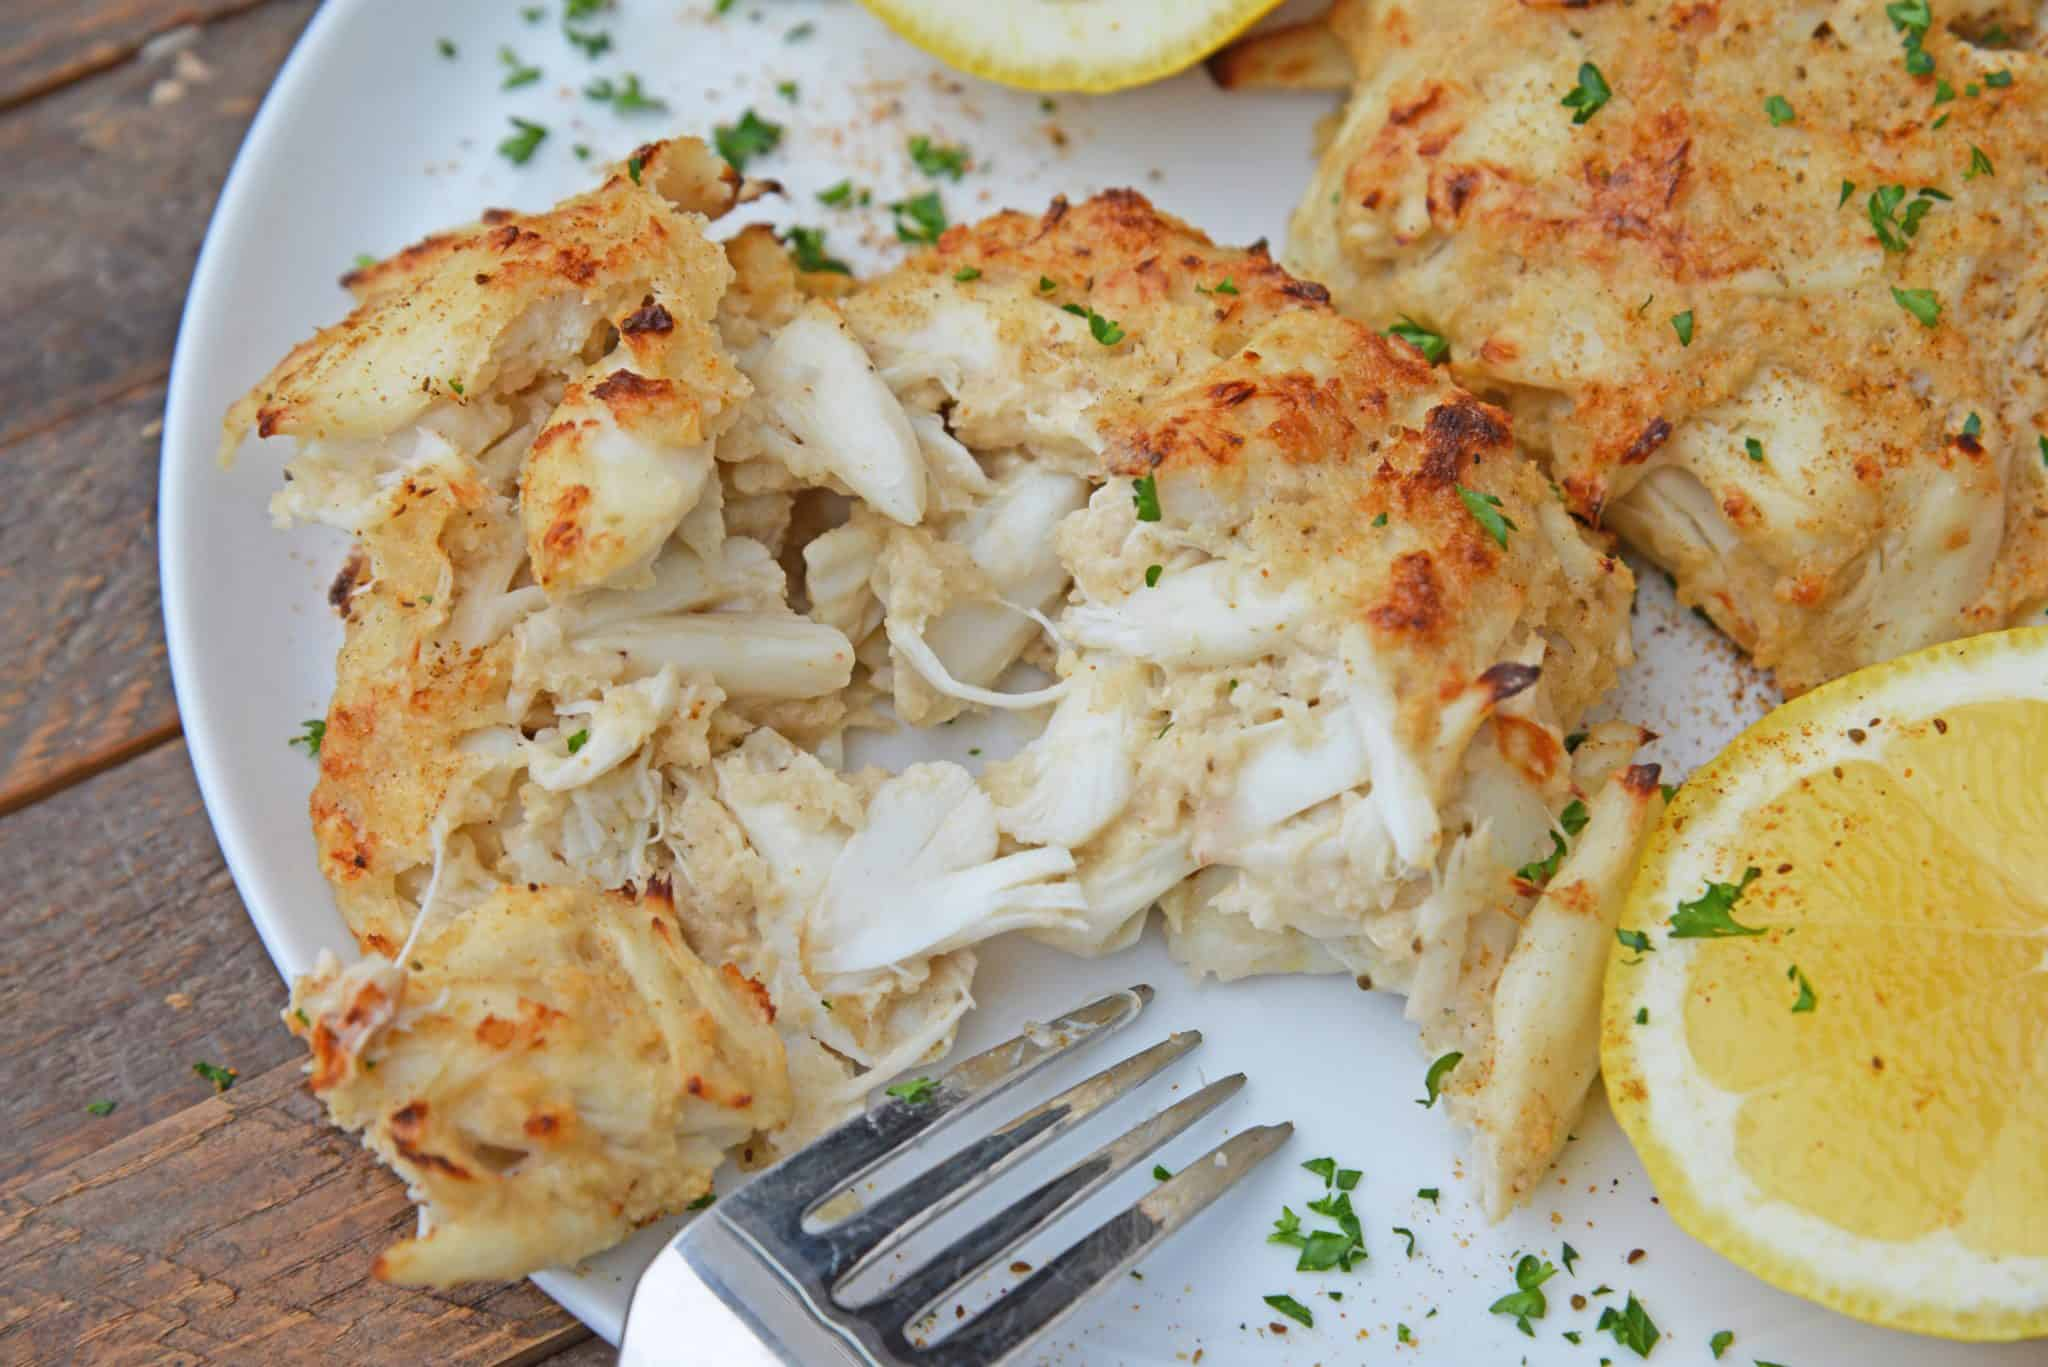 Maryland Crab Cakes are made with jumbo lump crab meat with little filler, Dijon mustard and Old Bay Seasoning plus secrets to making authentic Chesapeake crab cakes! #marylandcrabcakes #crabcakerecipe www.savoryexperiments.com